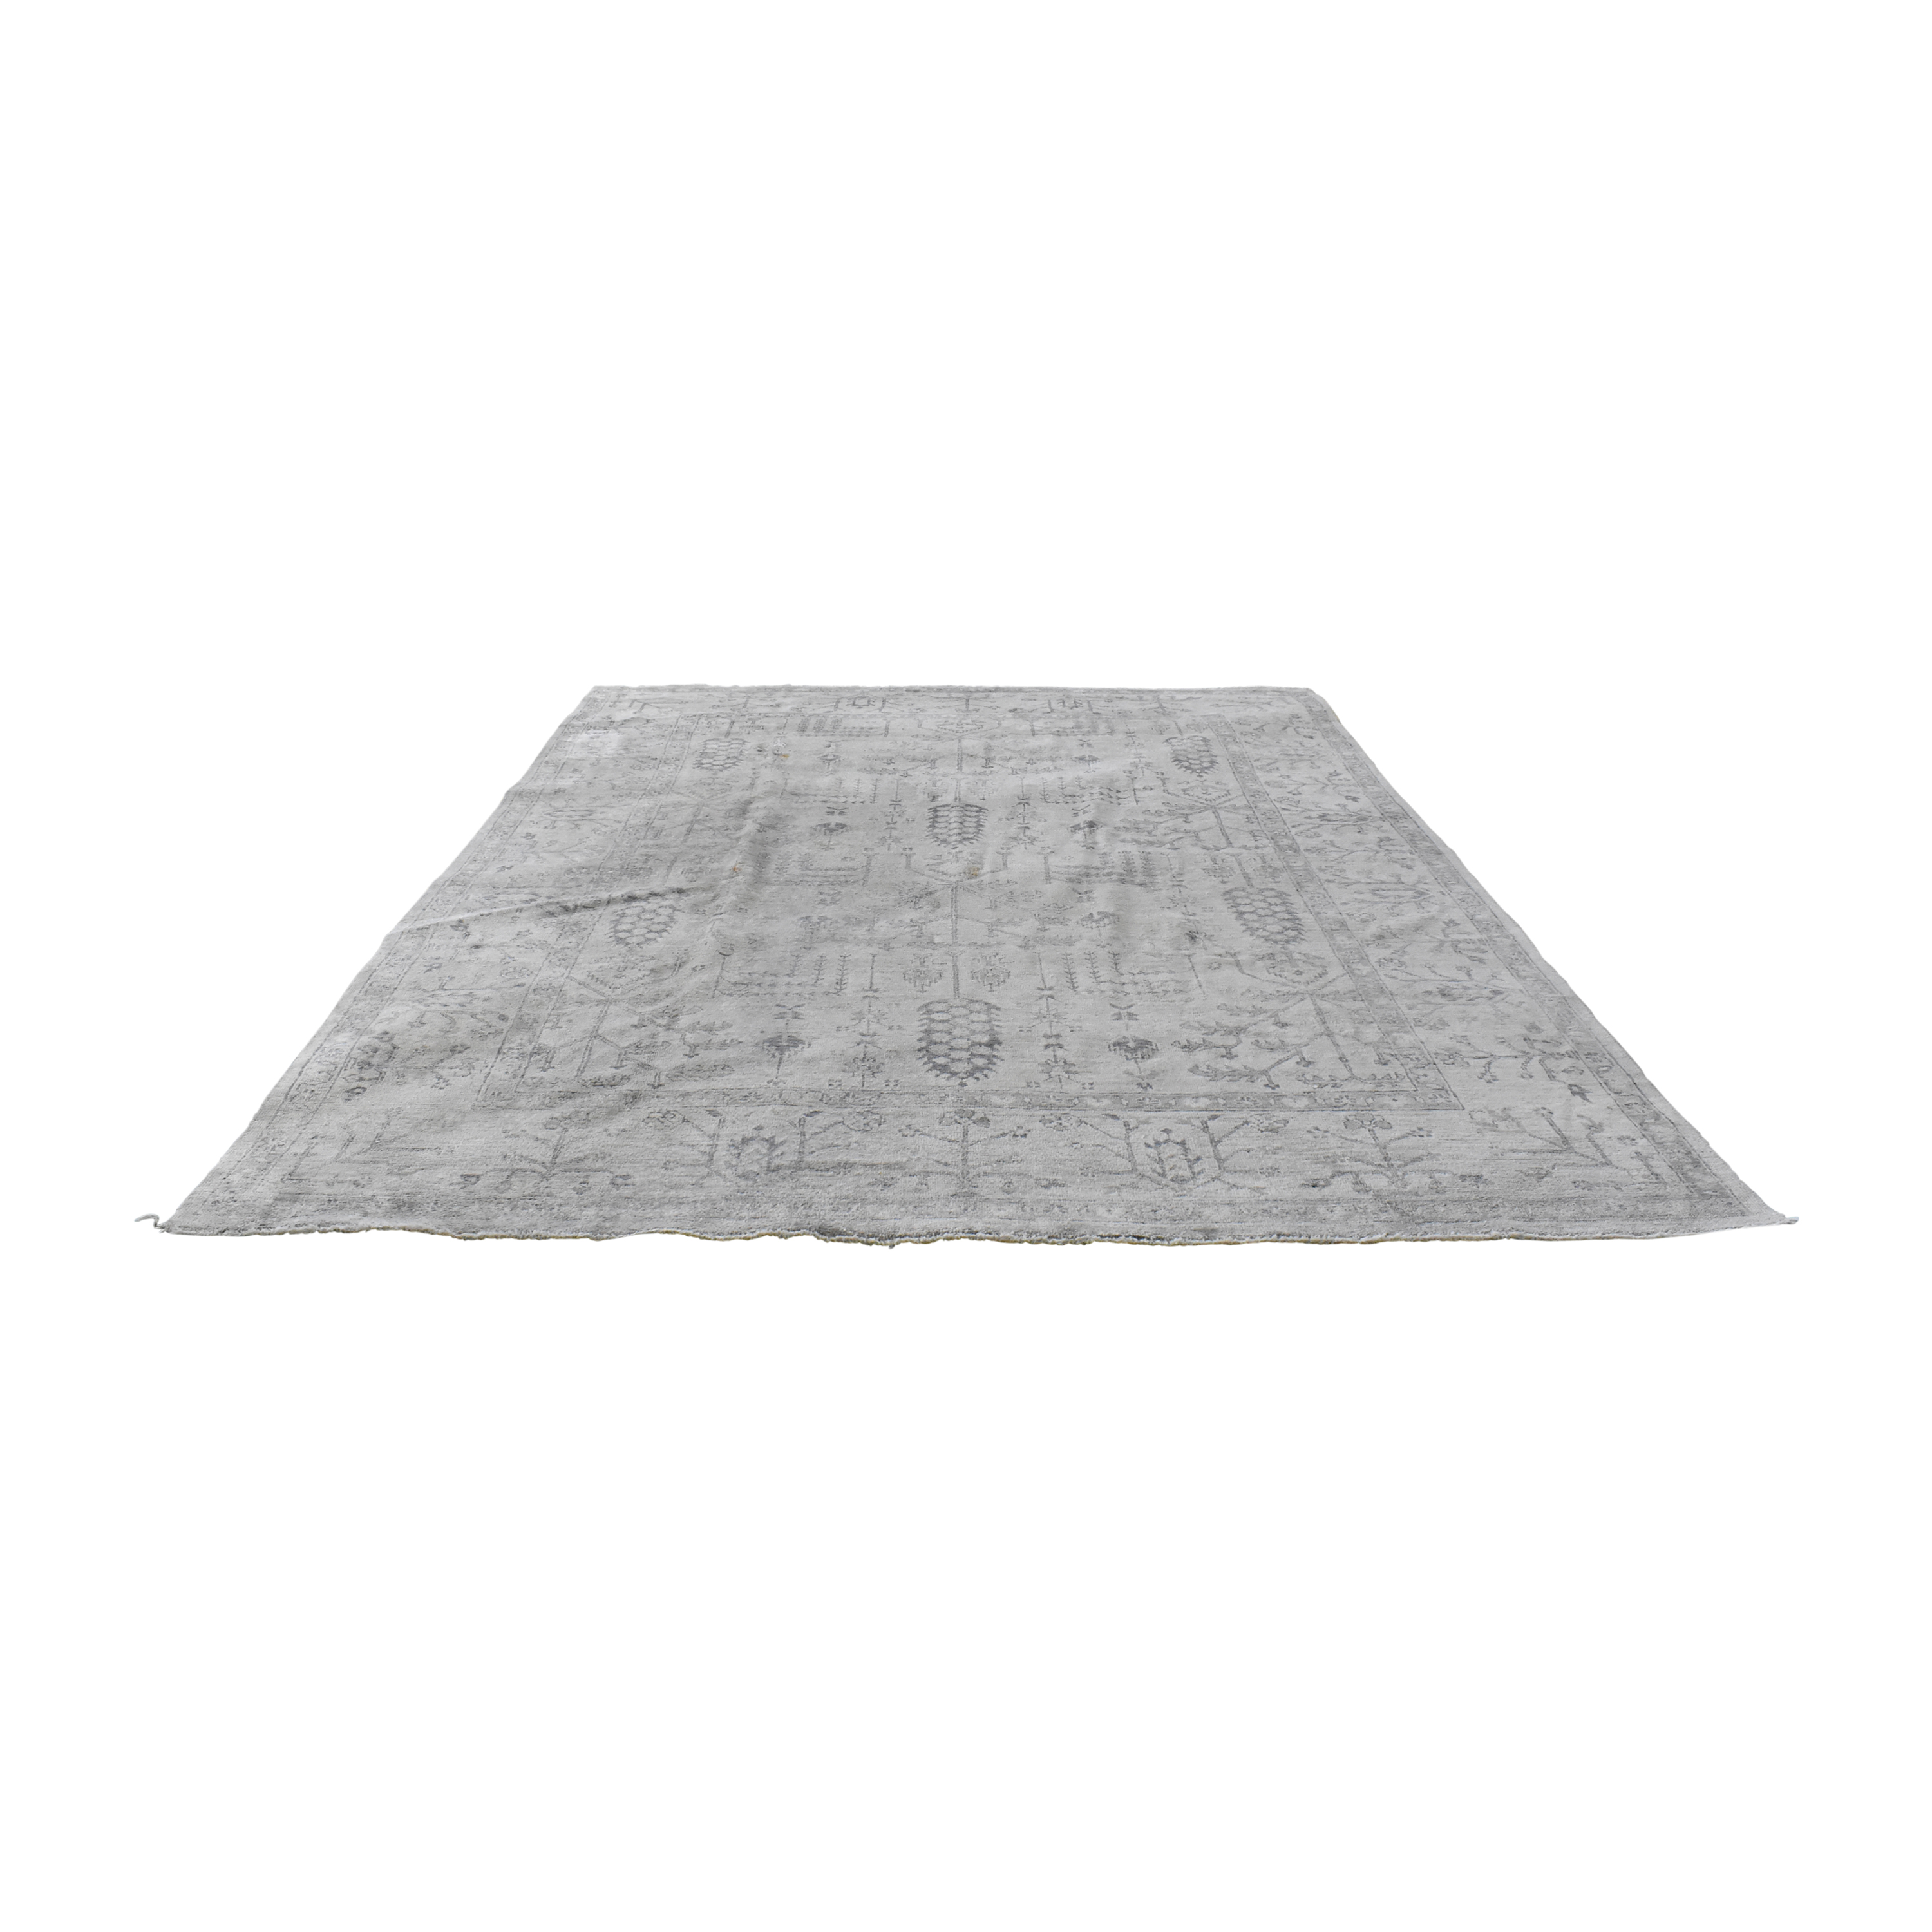 ABC Carpet & Home Sultanabad-Style Area Rug ABC Carpet & Home